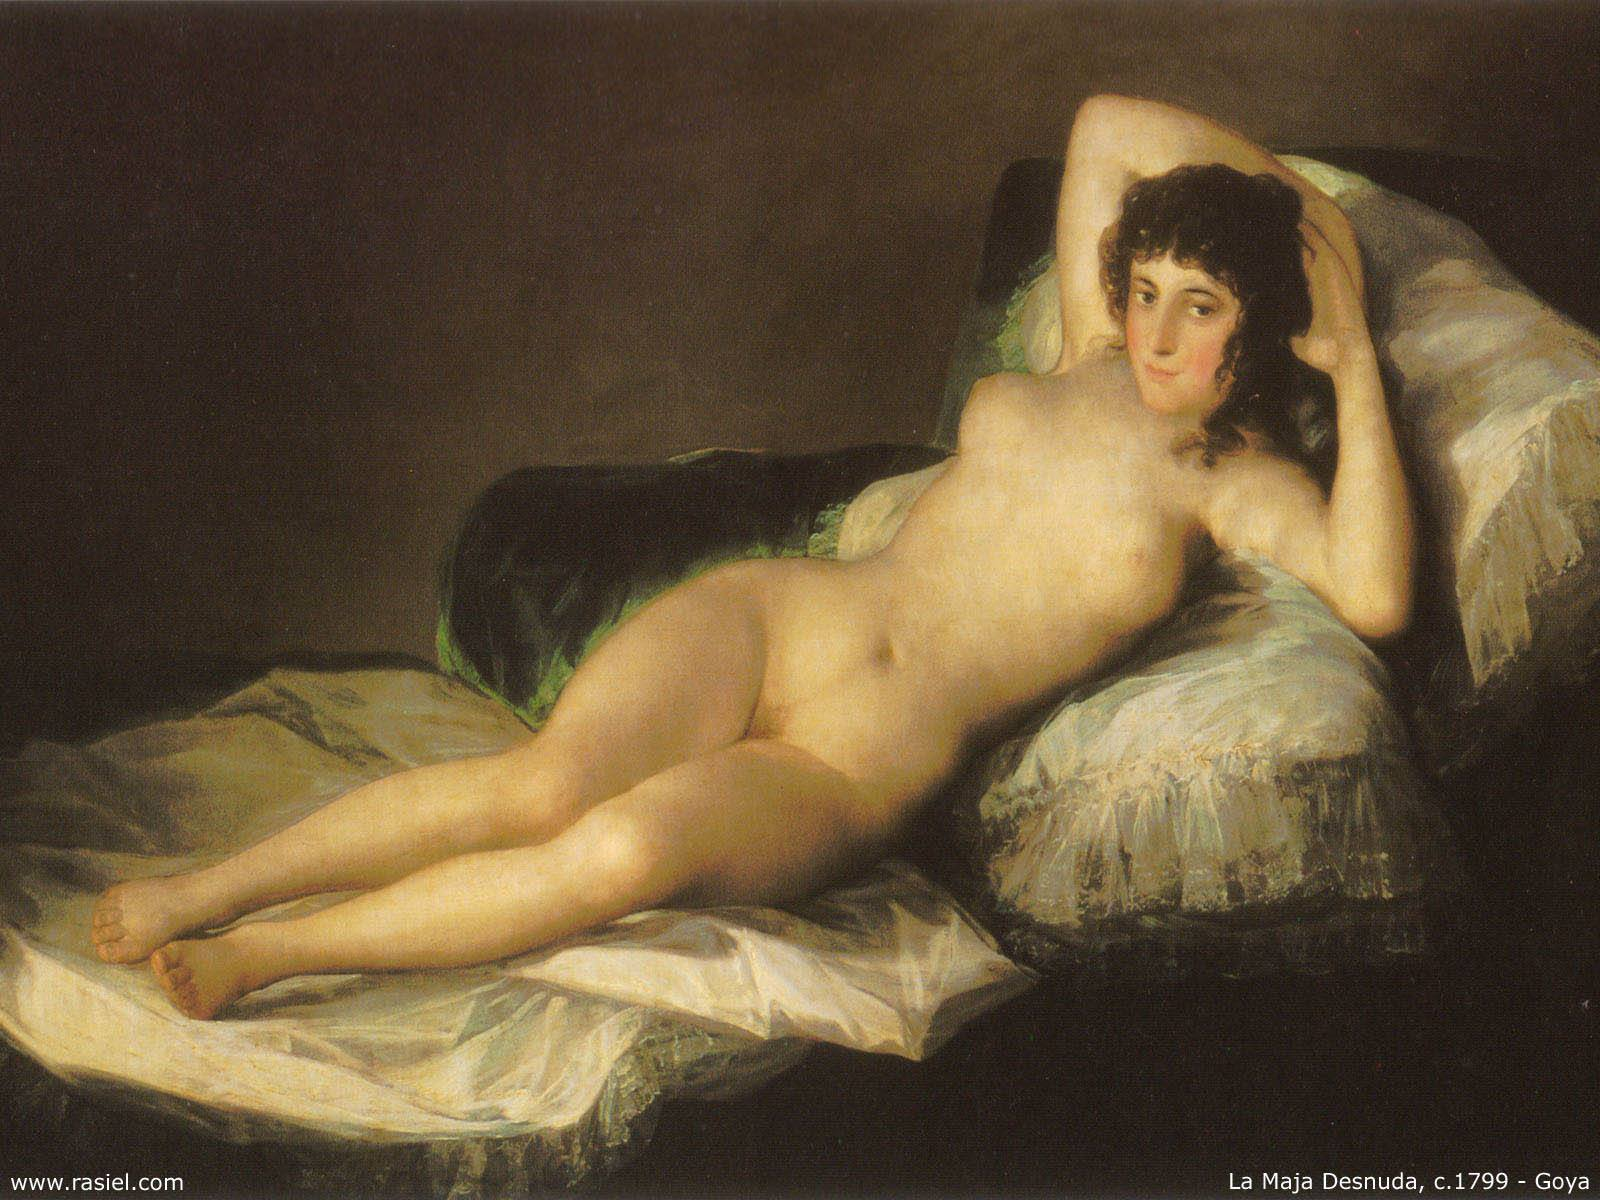 http://www.omda.bg/uploaded_files/images/goya-3.jpg